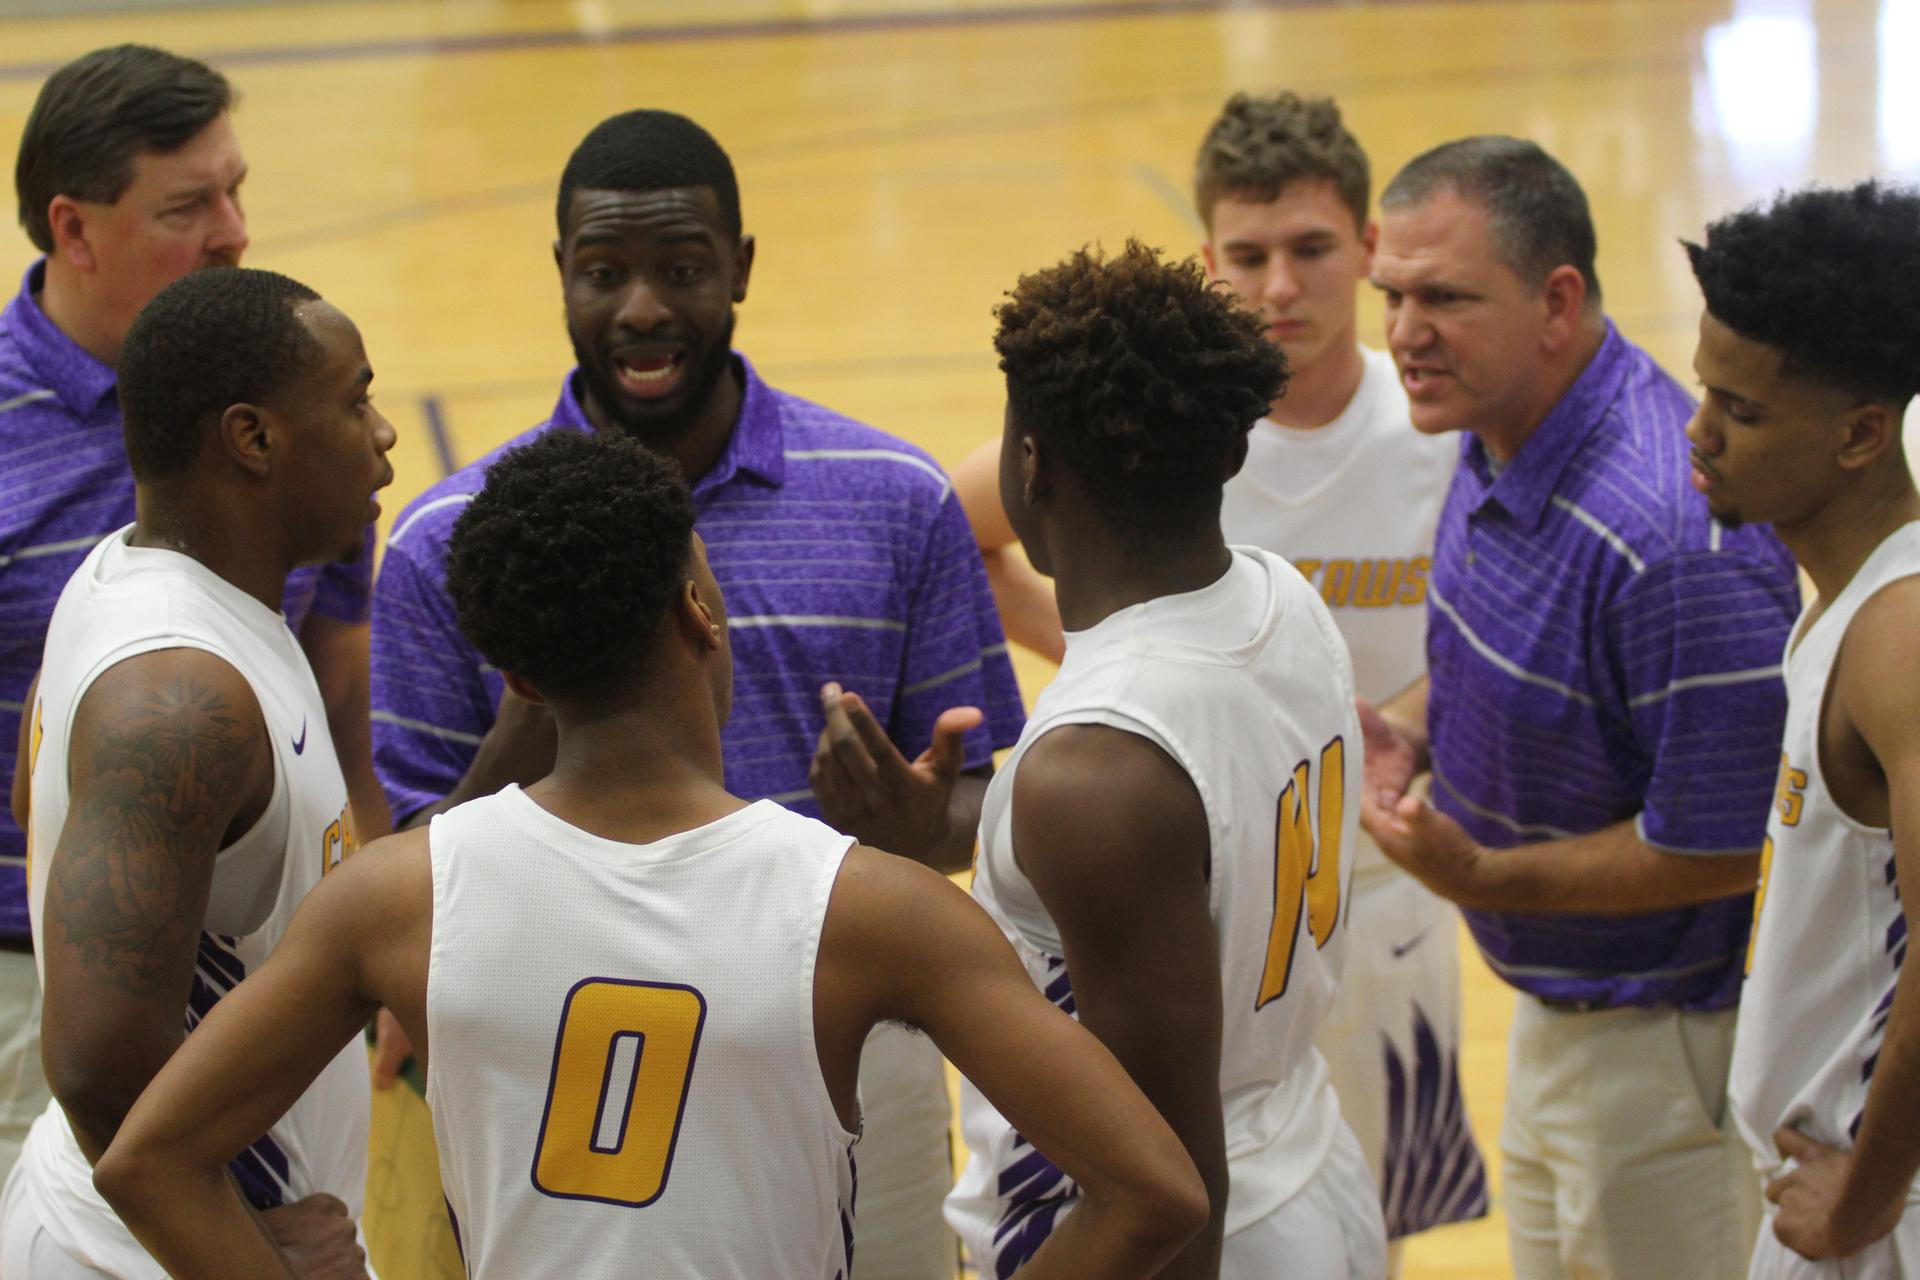 Coach Wallace and Coach Russell talk to players during a time out.